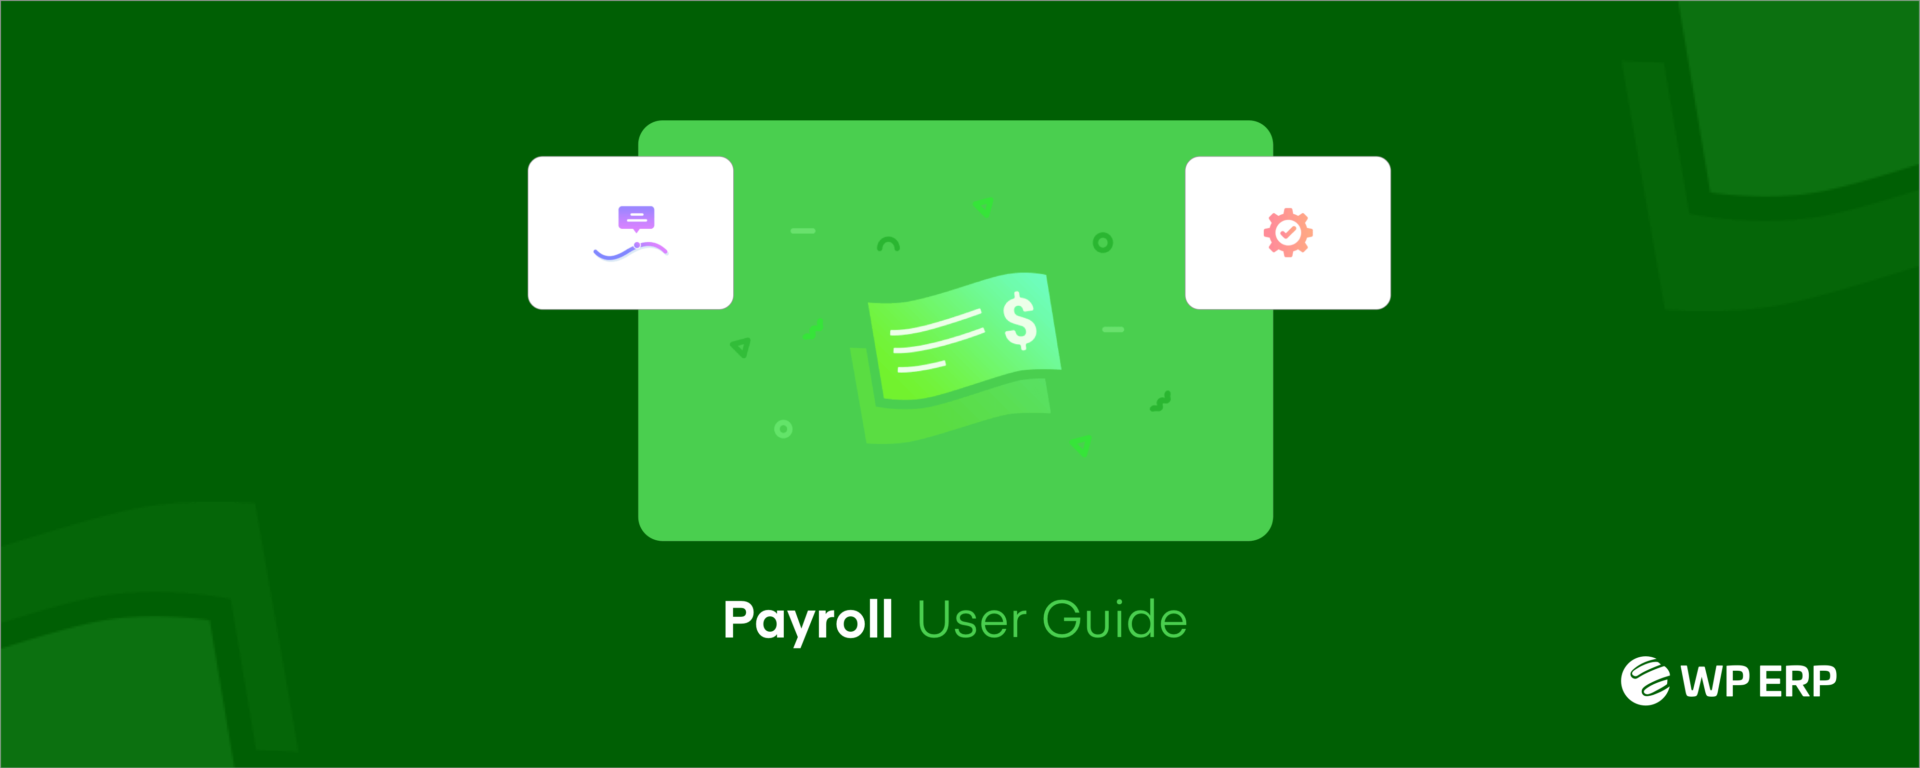 Payroll user guide